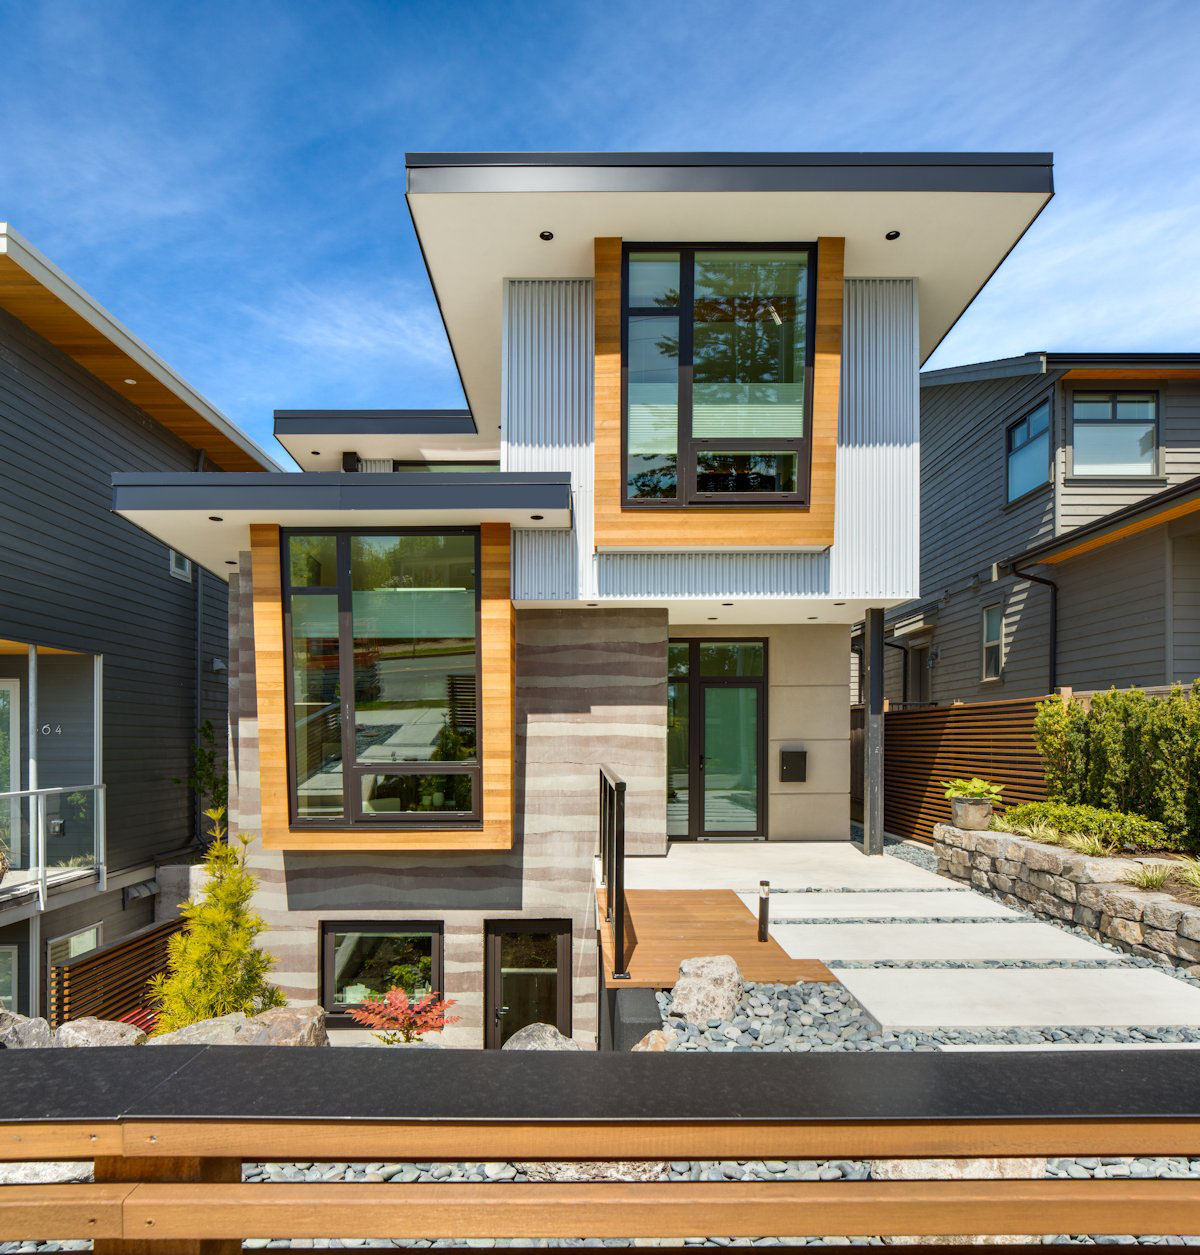 Award Winning Small Home Designs: Award-Winning High-Class Ultra Green Home Design In Canada